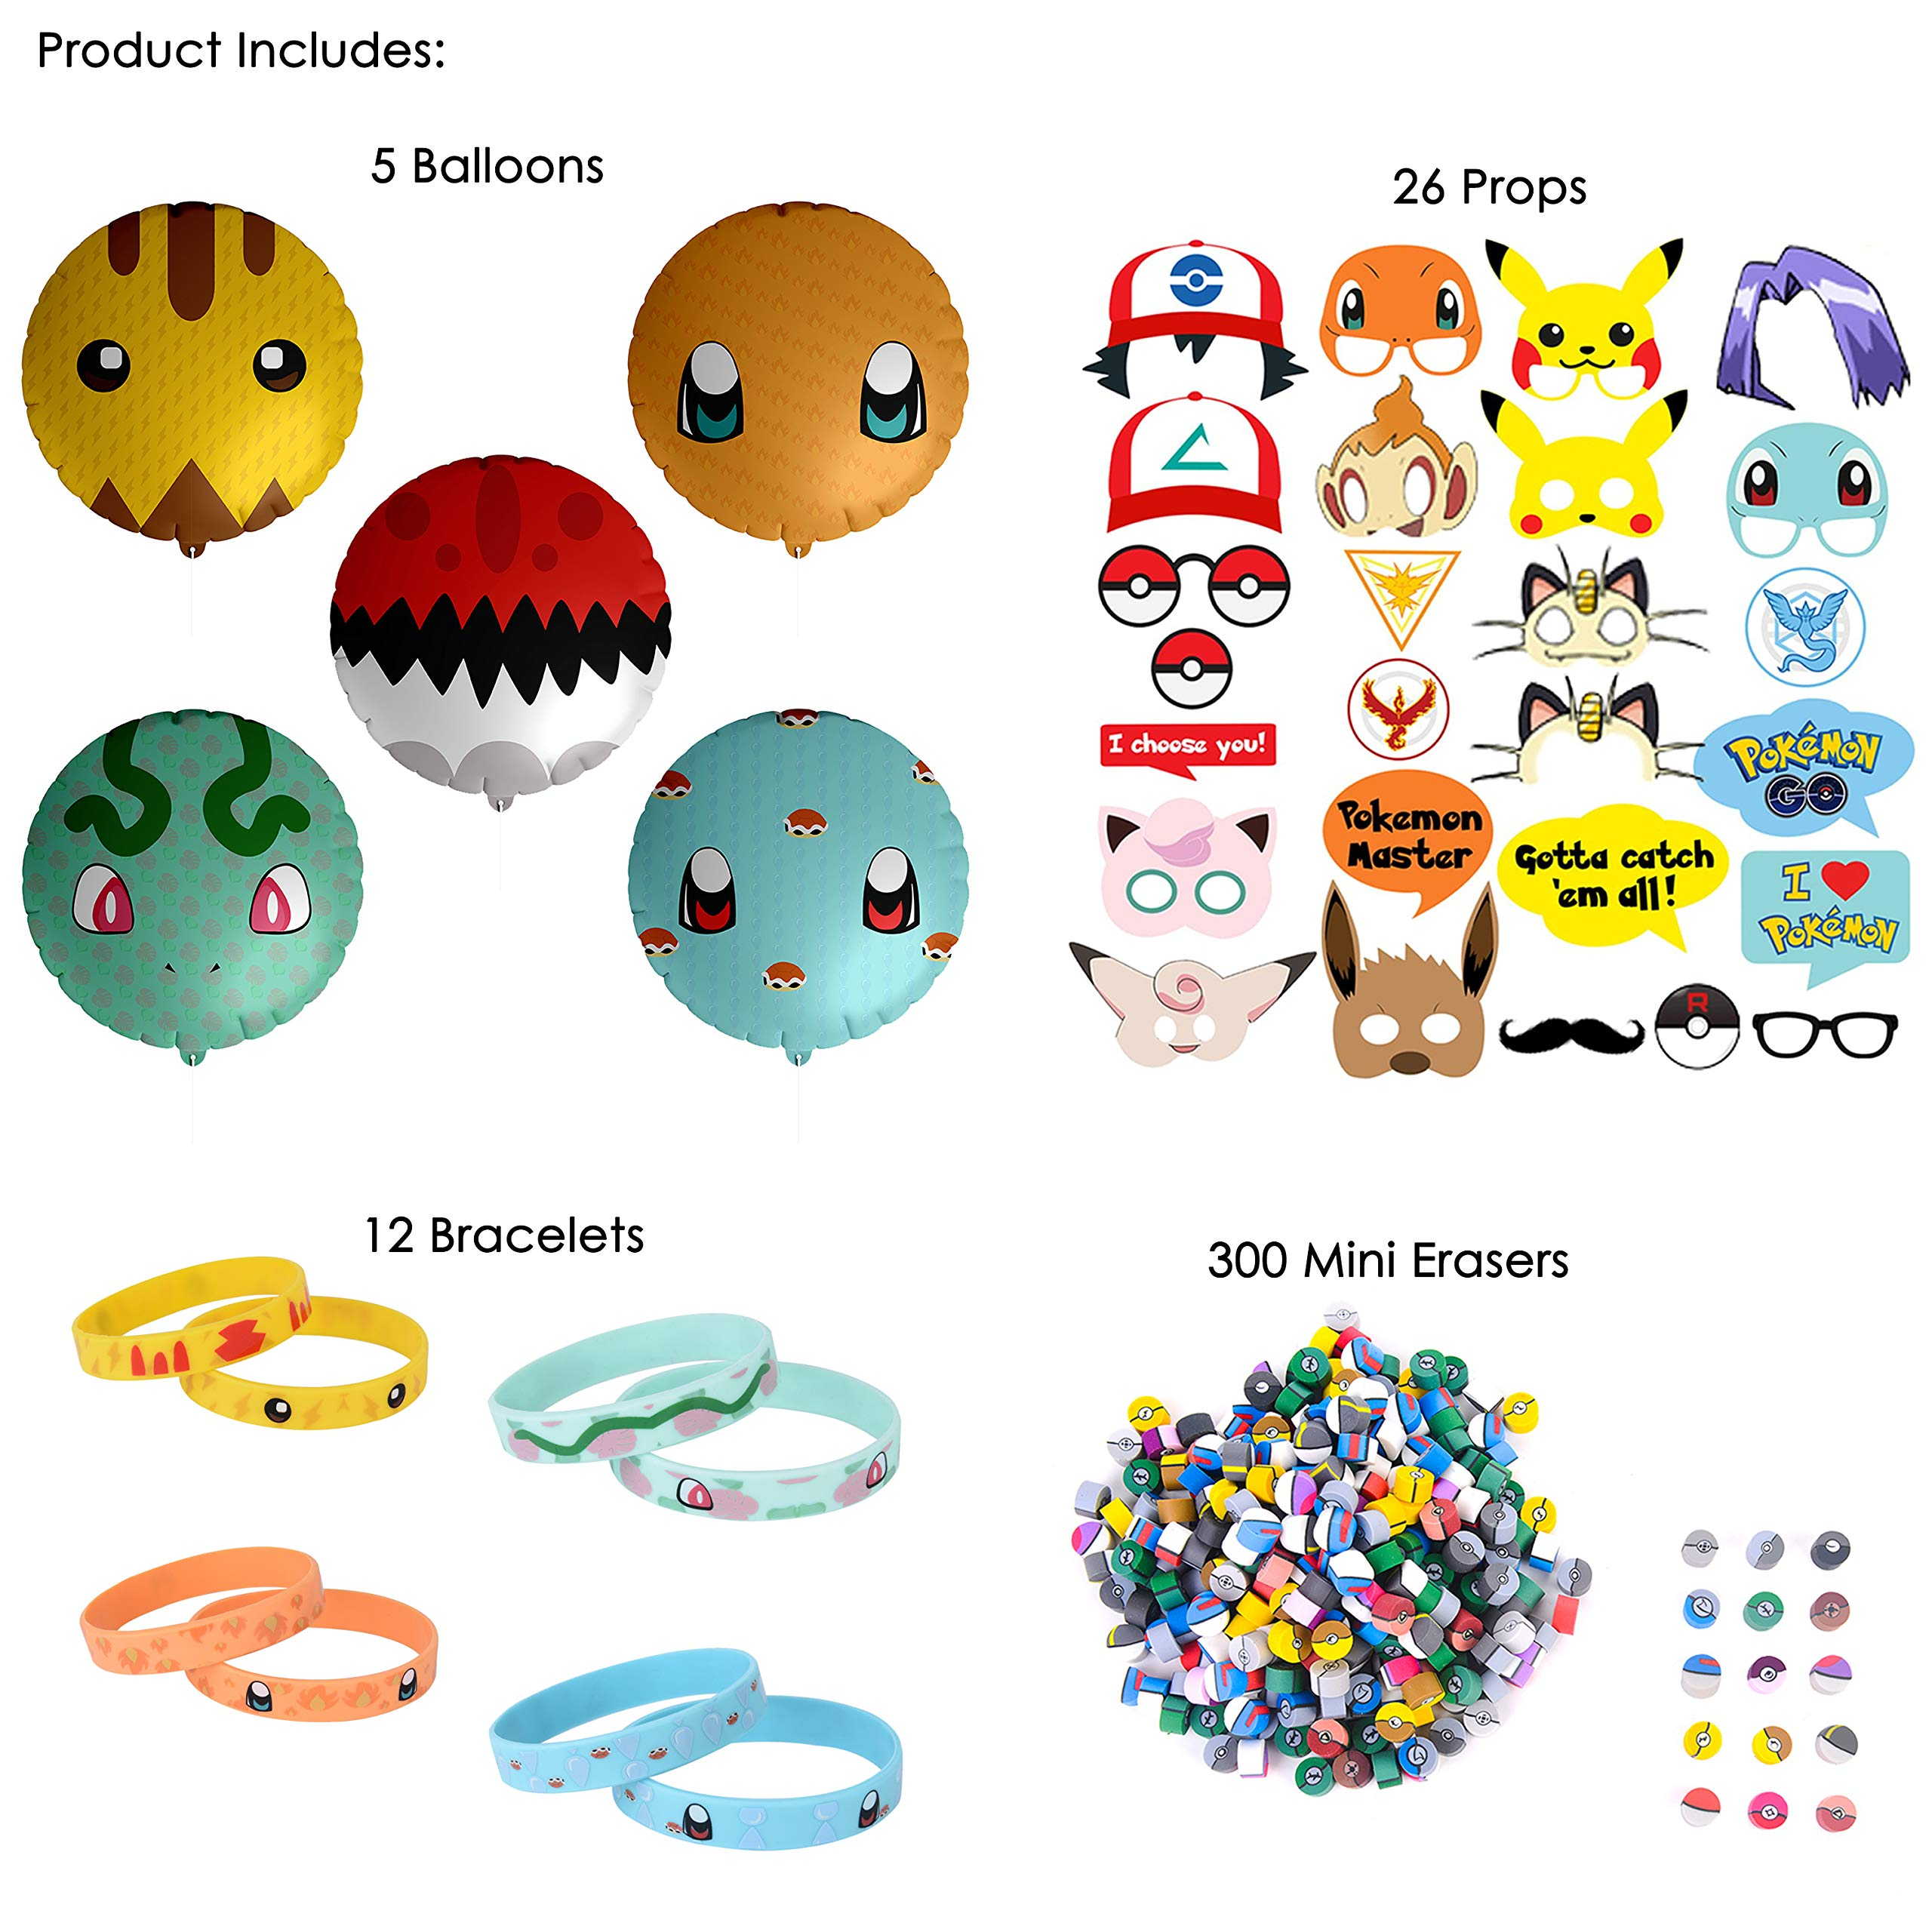 Totem World 343 pcs Party Favor Supply Mega Pack for Pokemon Theme Party - Includes Pokemon Inspired Balloons, Bracelets, Erasers, and Props - Perfect Stocking Stuffer by Totem World (Image #2)